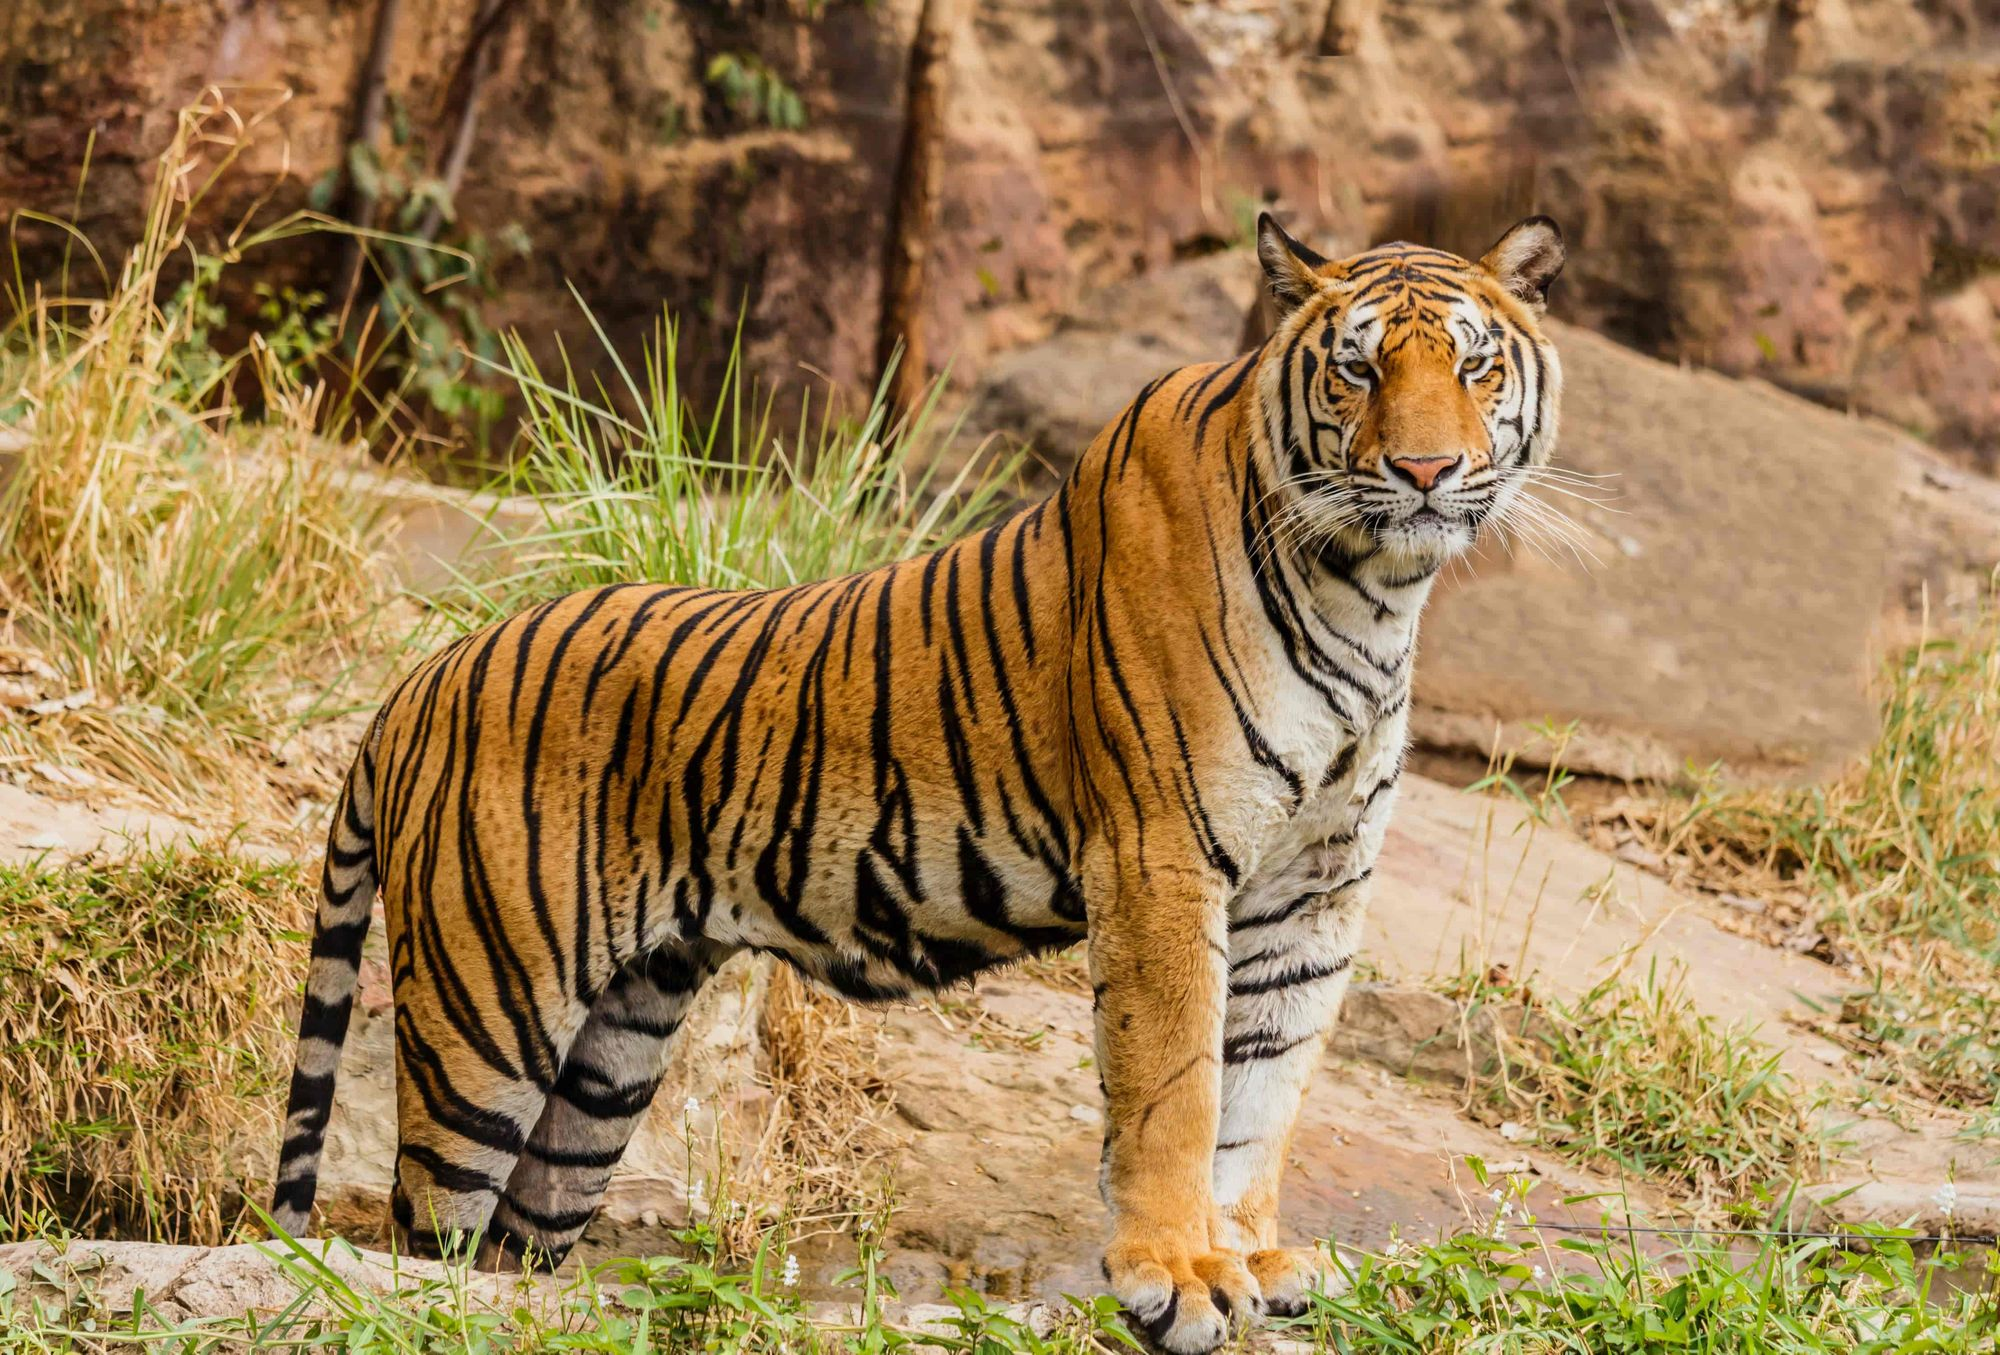 A fierce tiger standing at its territory in the wild.